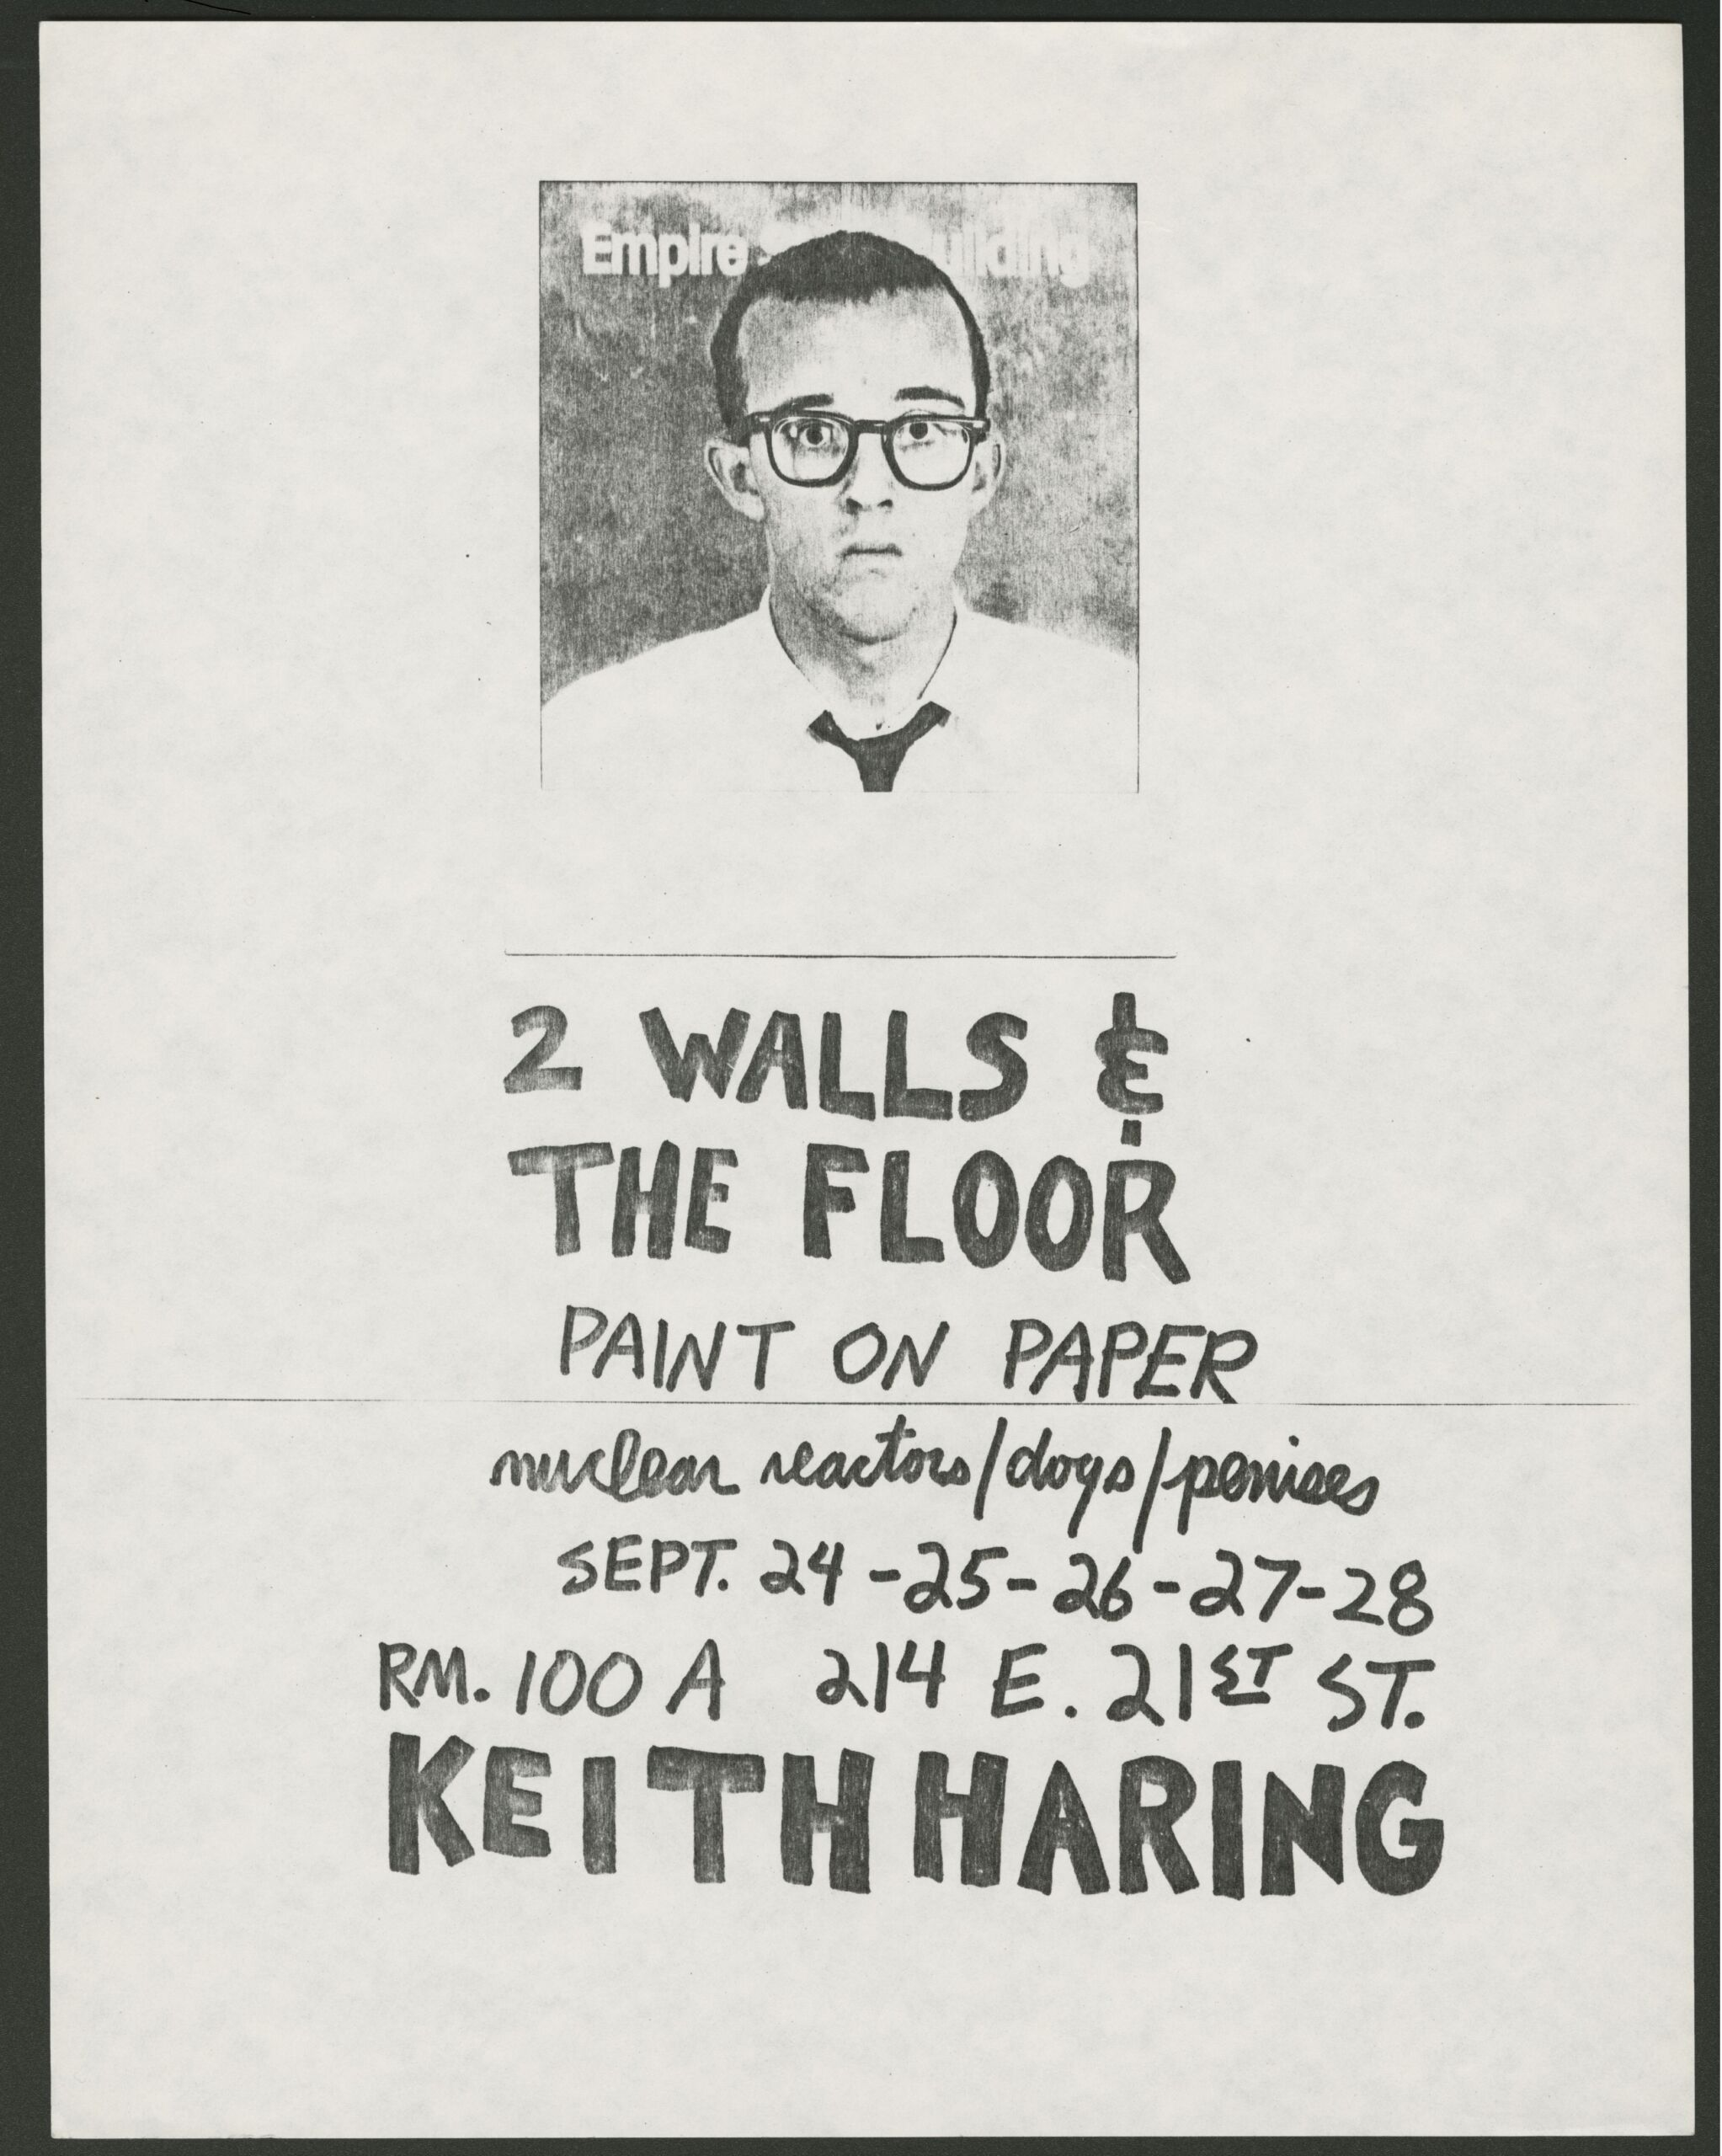 An off-white poster with black and white image of man in glasses, unsmiling. Beneath photo are handwritten words: 2 WALLS & THE FLOOR PAINT ON PAPER nuclear reactors/ dogs/ penises. The dates Sept. 24-25-26-27-28. R.m 1--A 214 E. 21st St. and Name Keith Haring